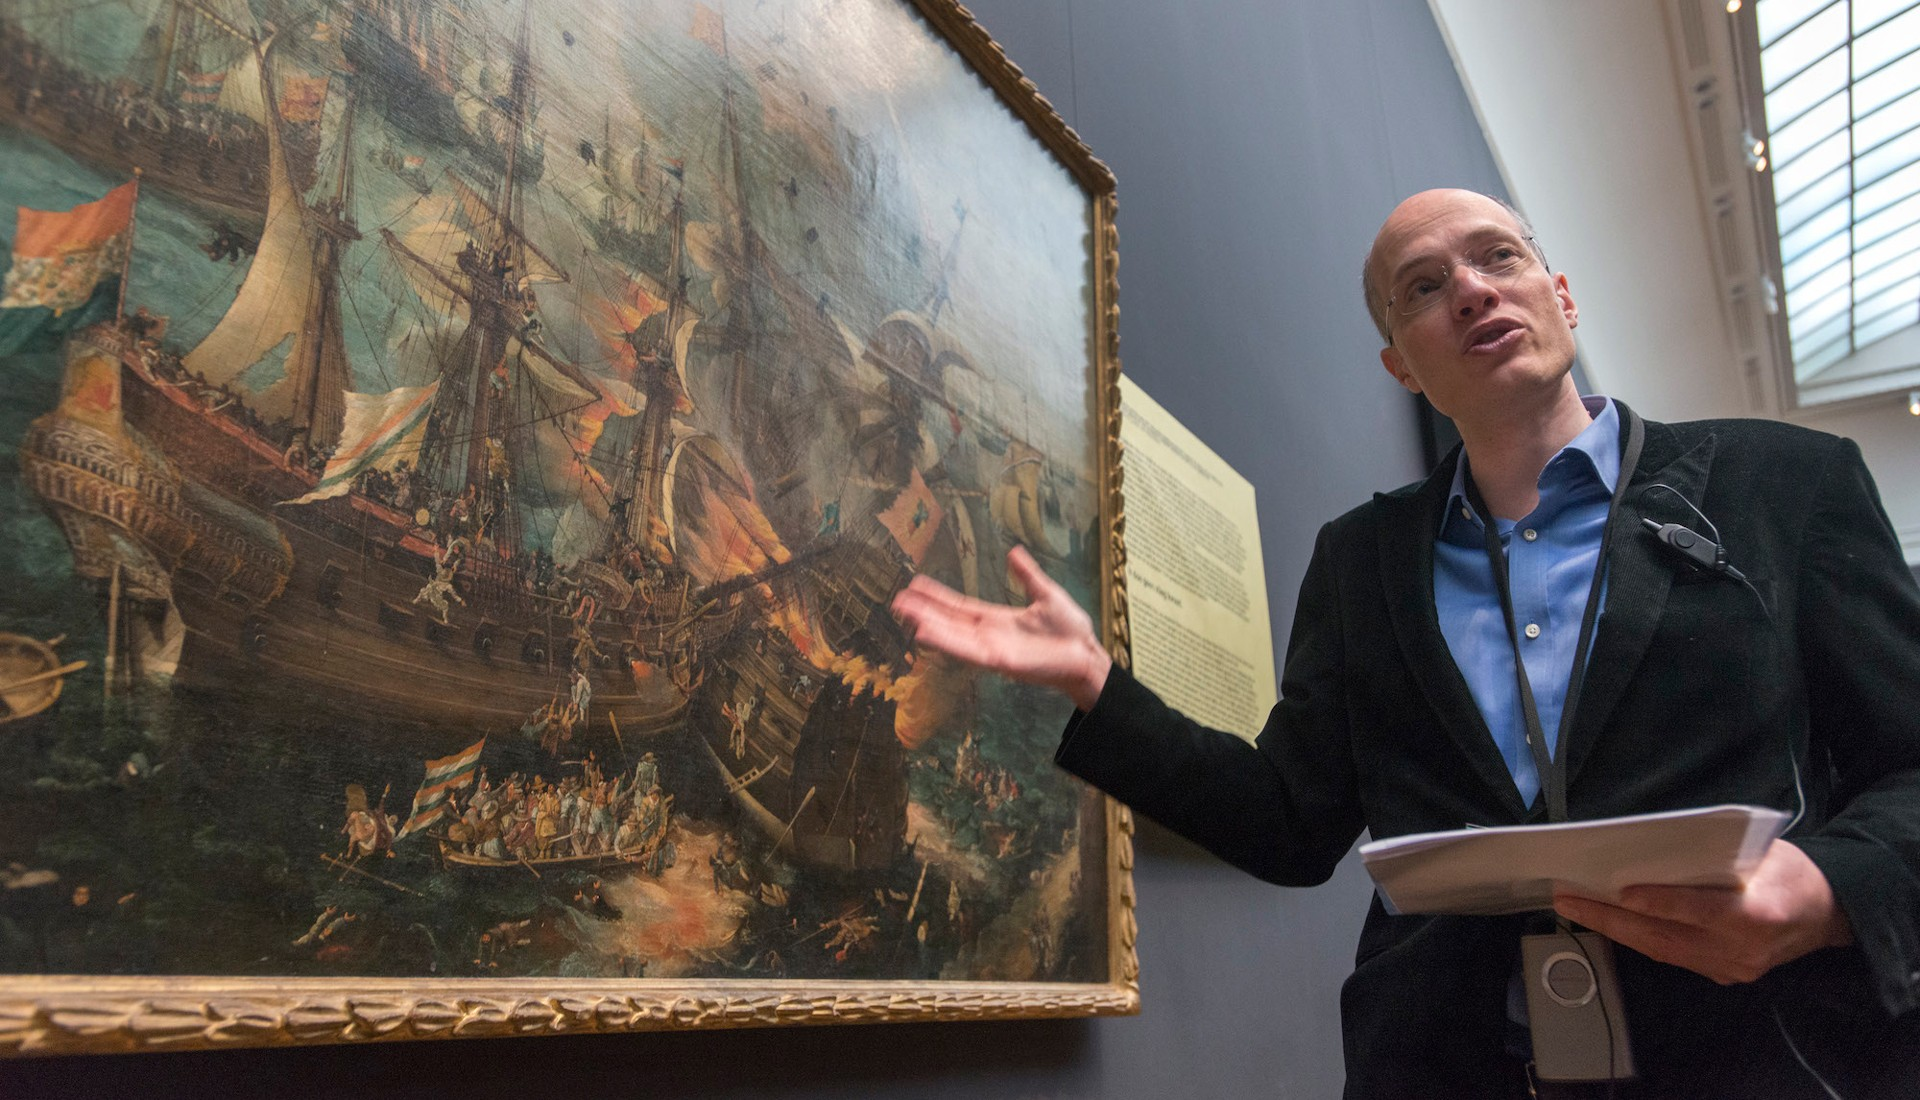 Alain de Botton explains The Battle of Gibraltar. Photo: Herman Wouters/Hollandse Hoogte